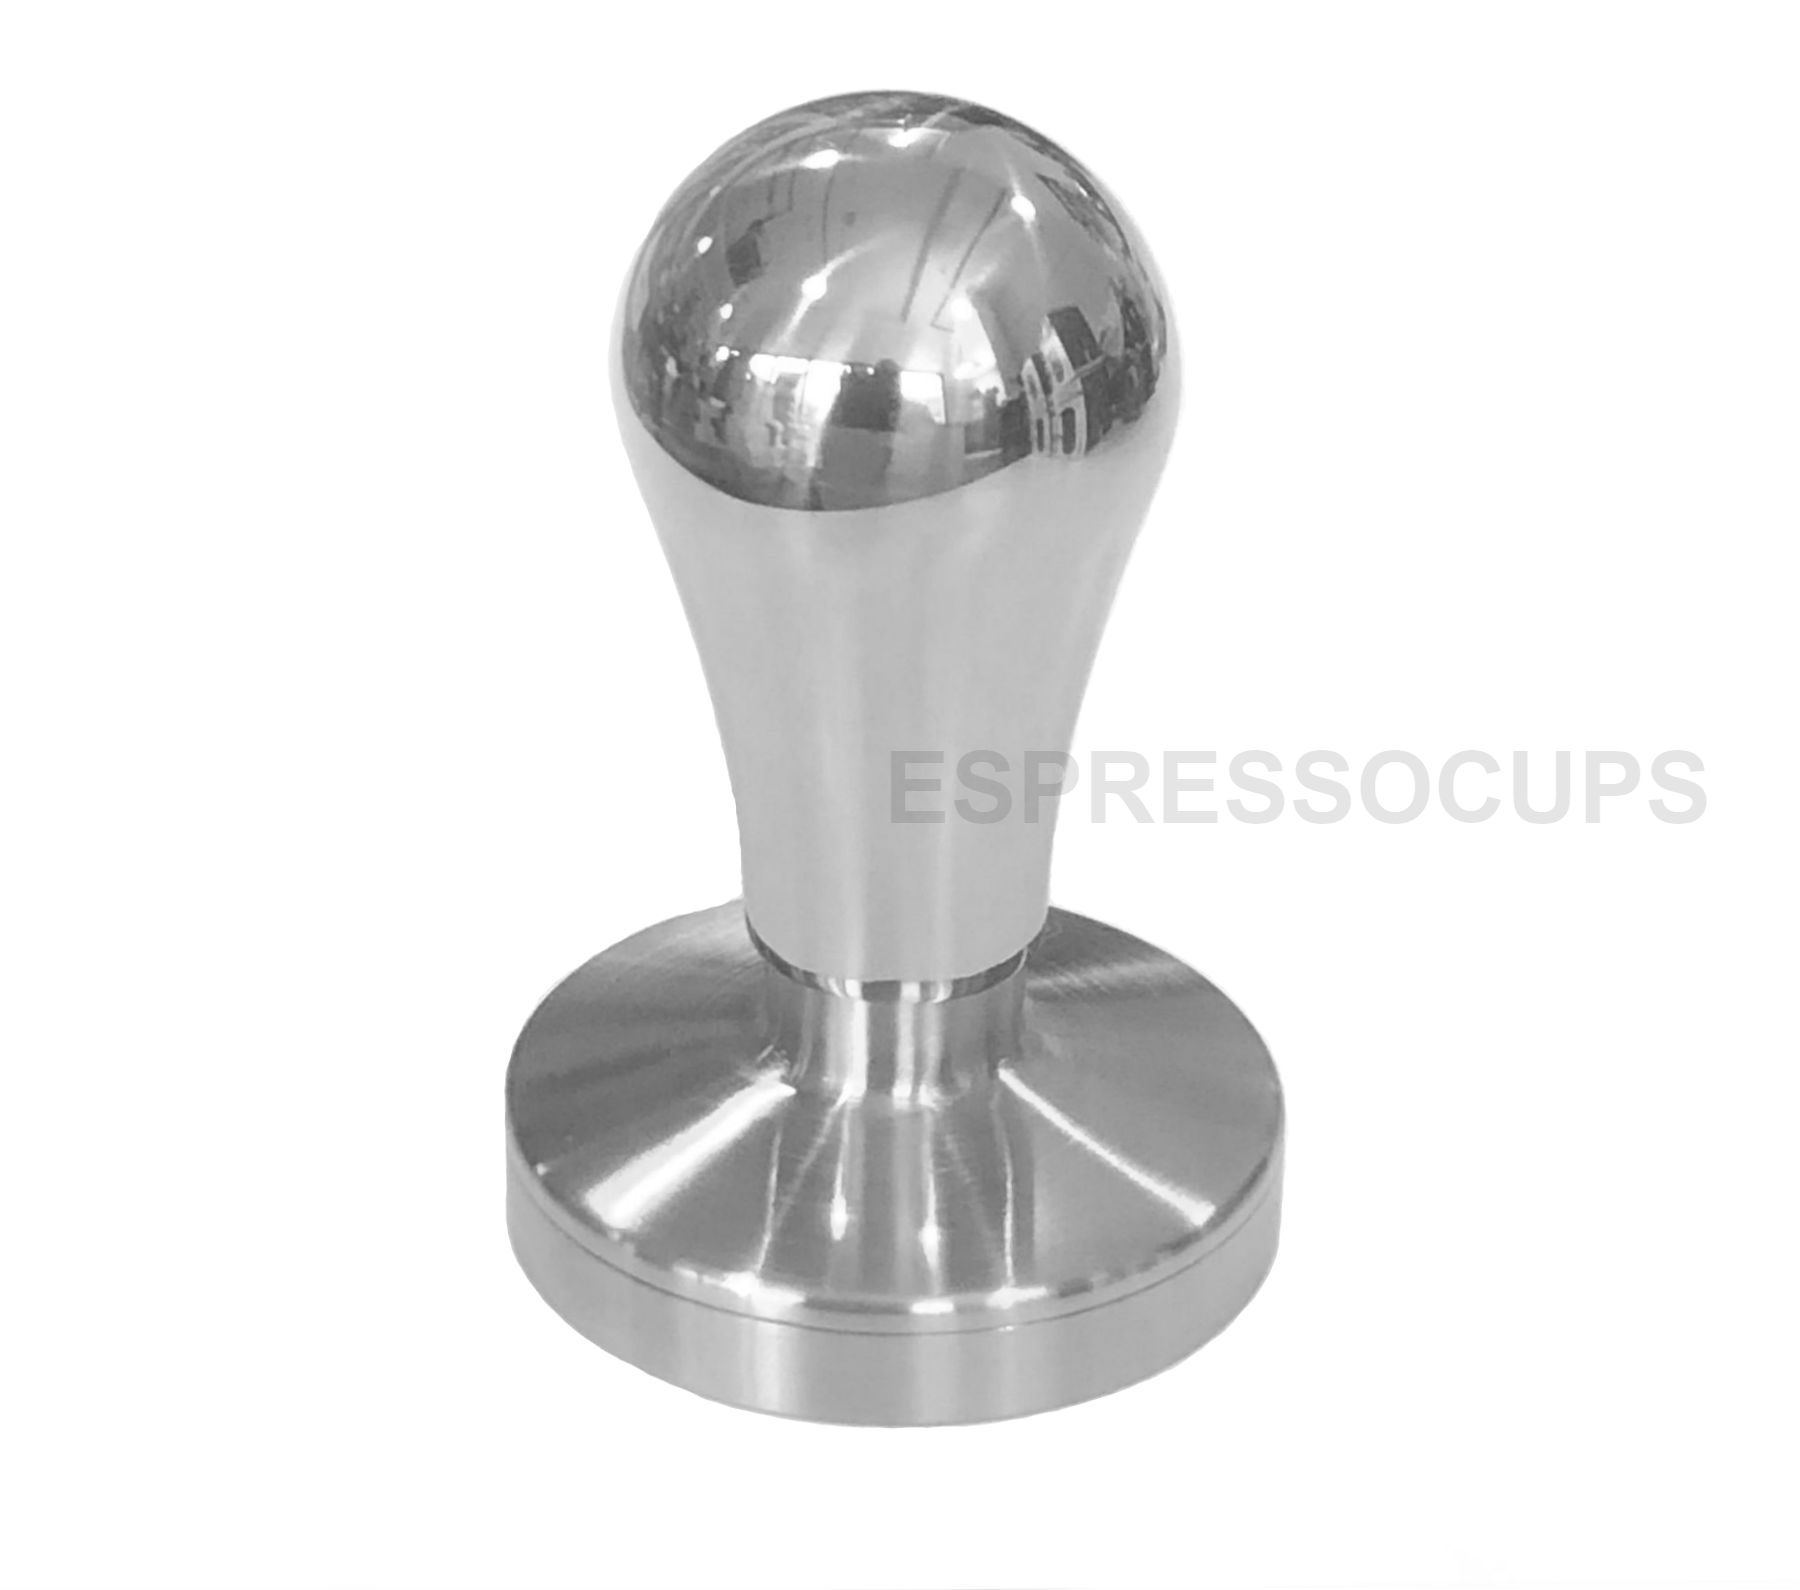 XT Tamper 58.35mm - Mirror Finish